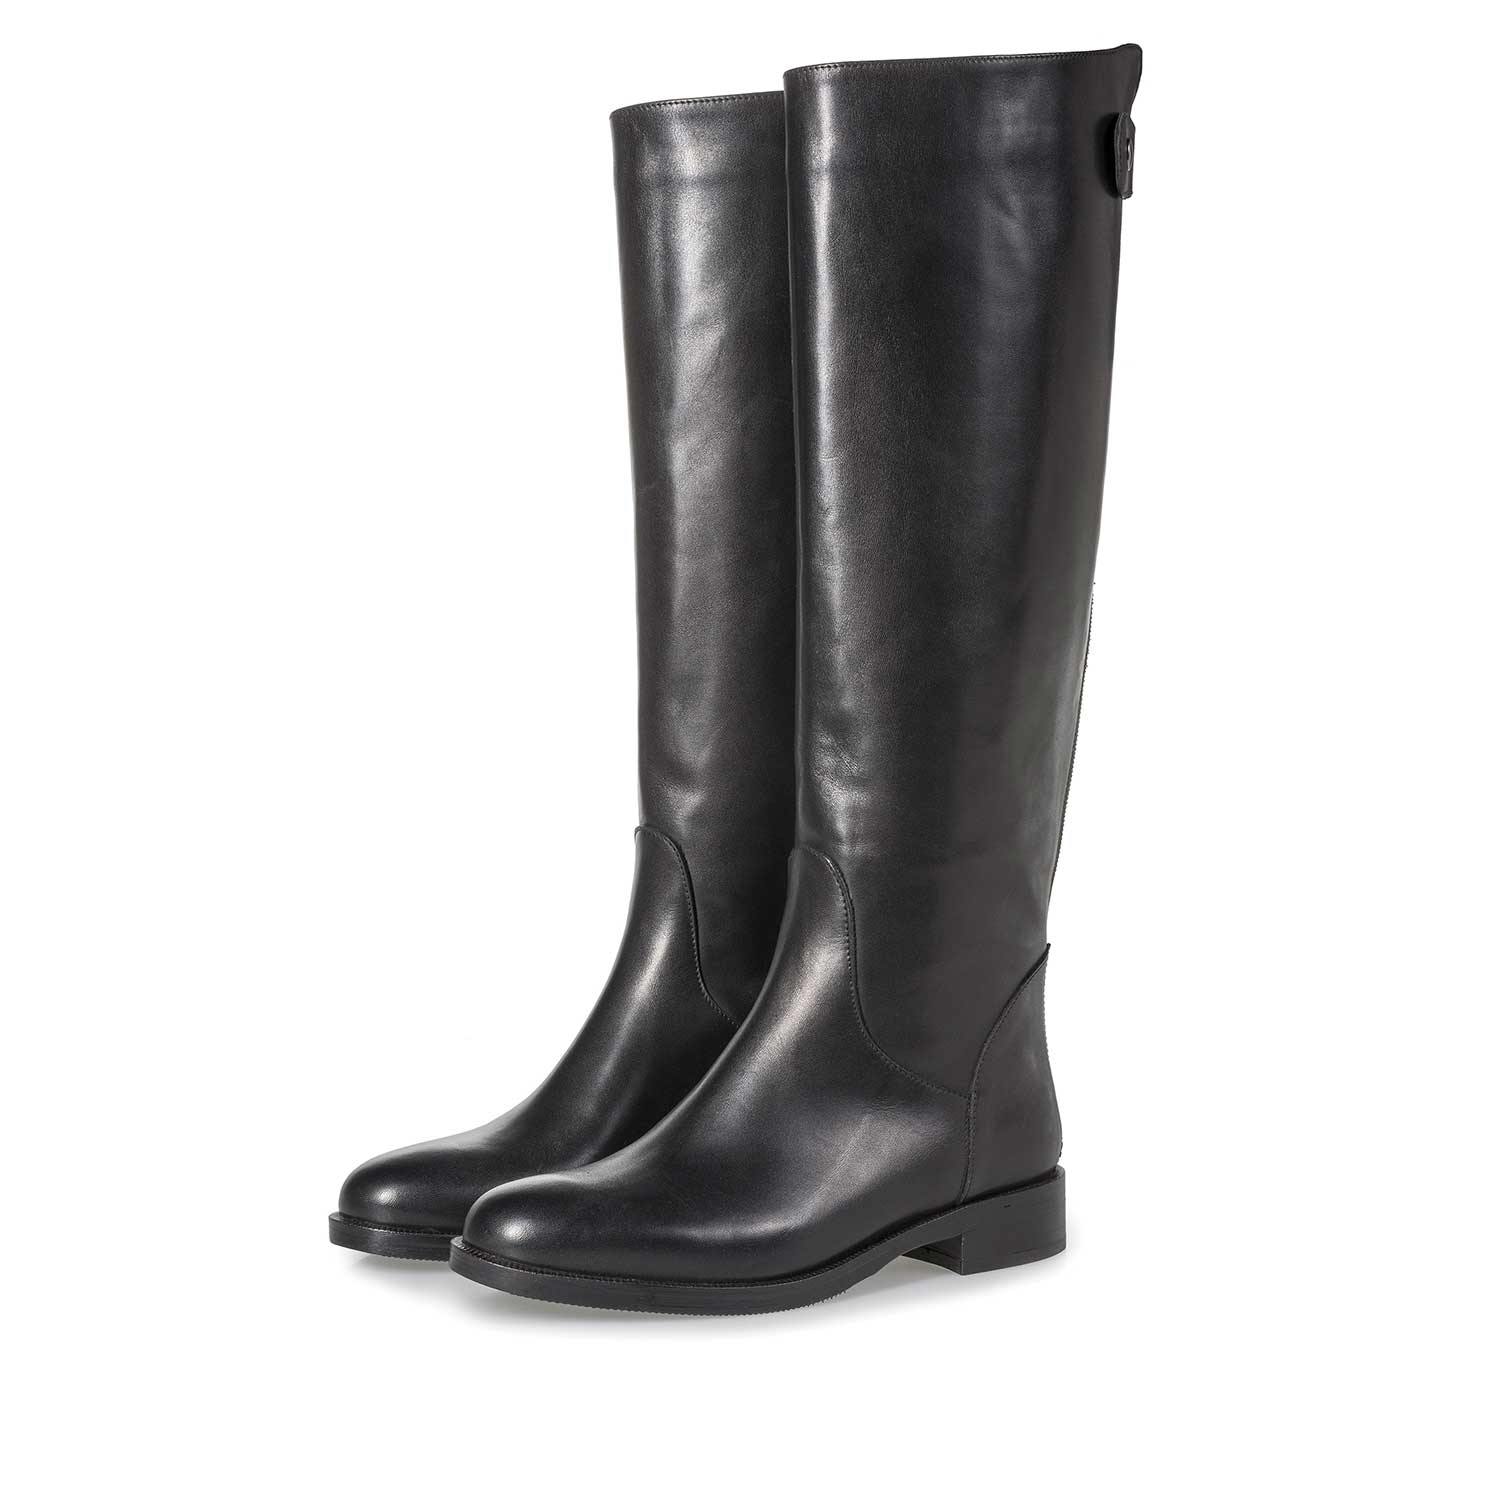 85715/00 - Black calf leather high boots